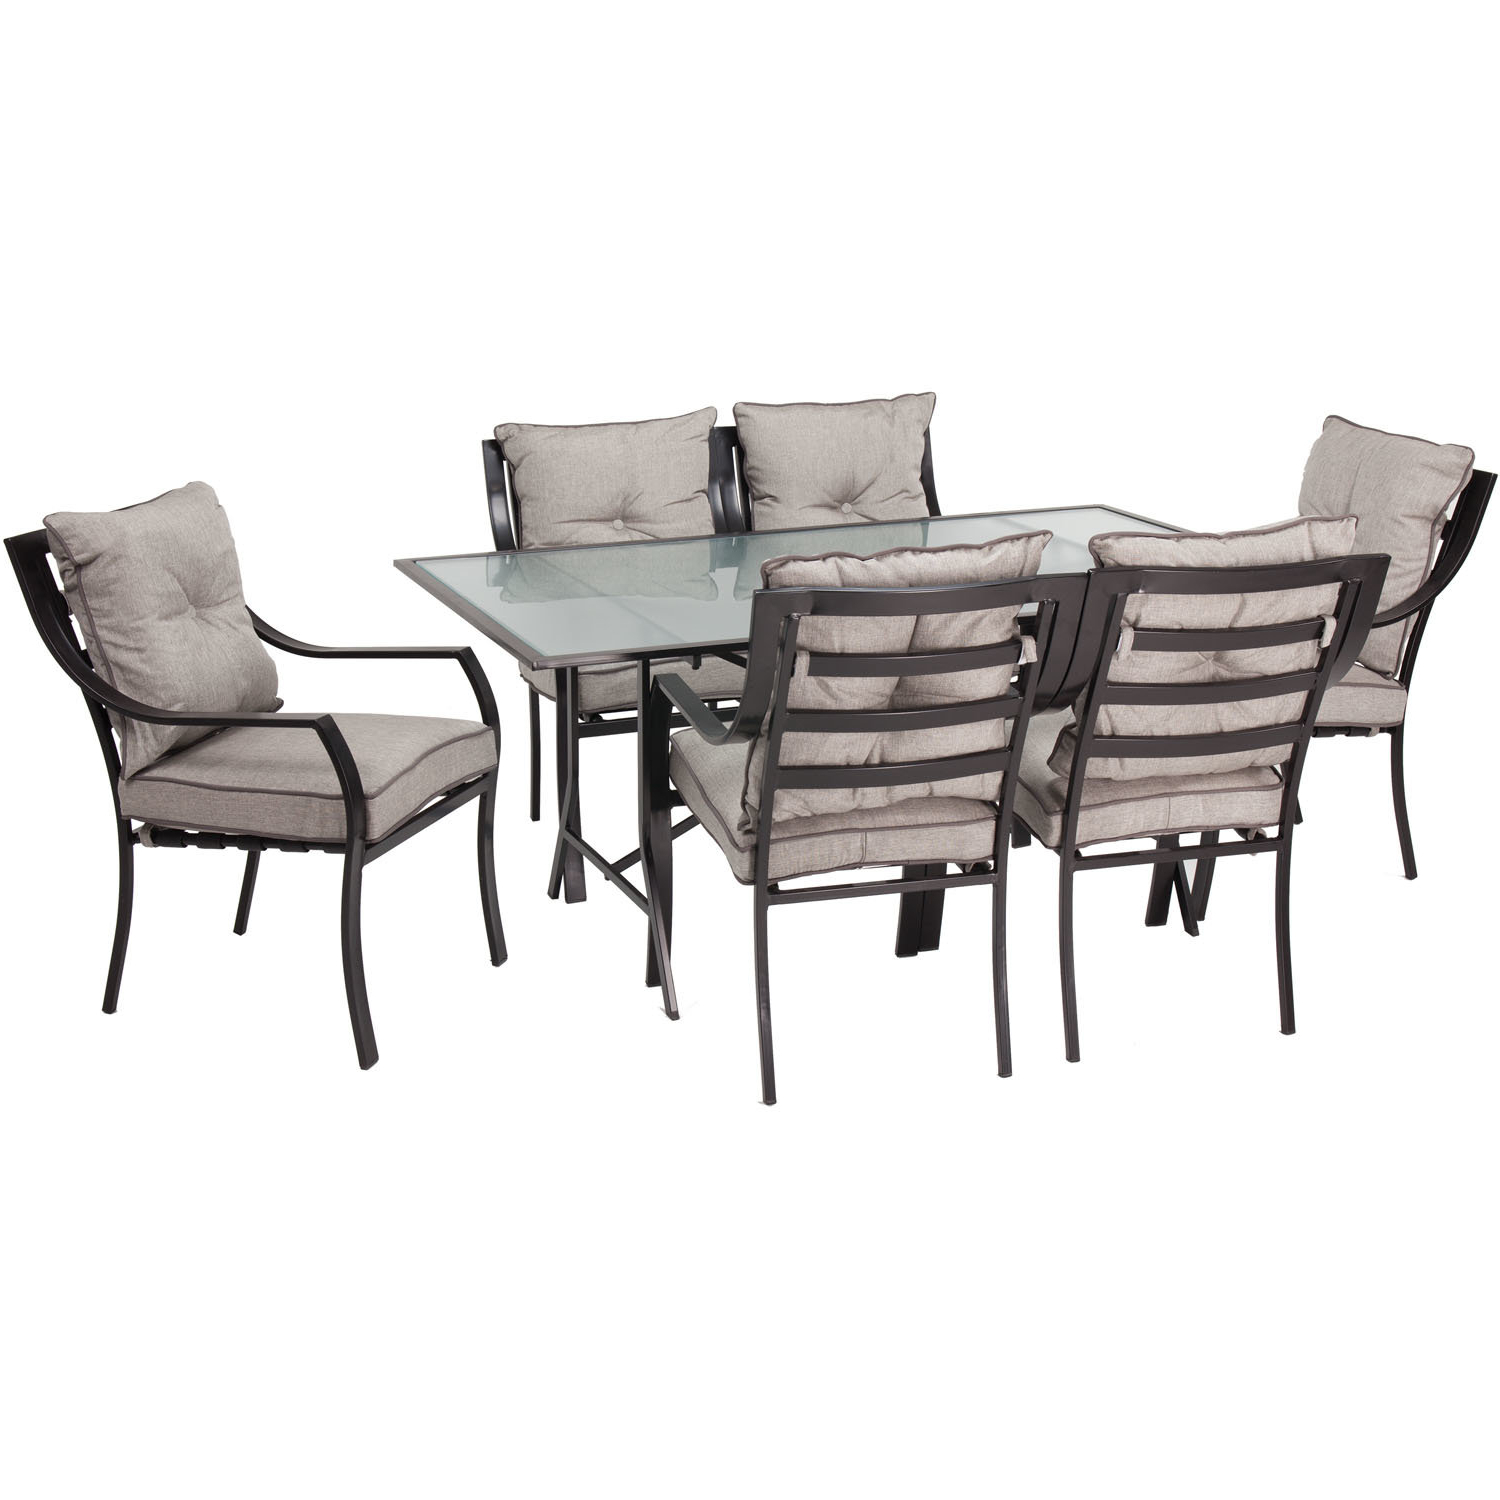 Bozarth 7 Piece Dining Set With Cushion (View 17 of 25)